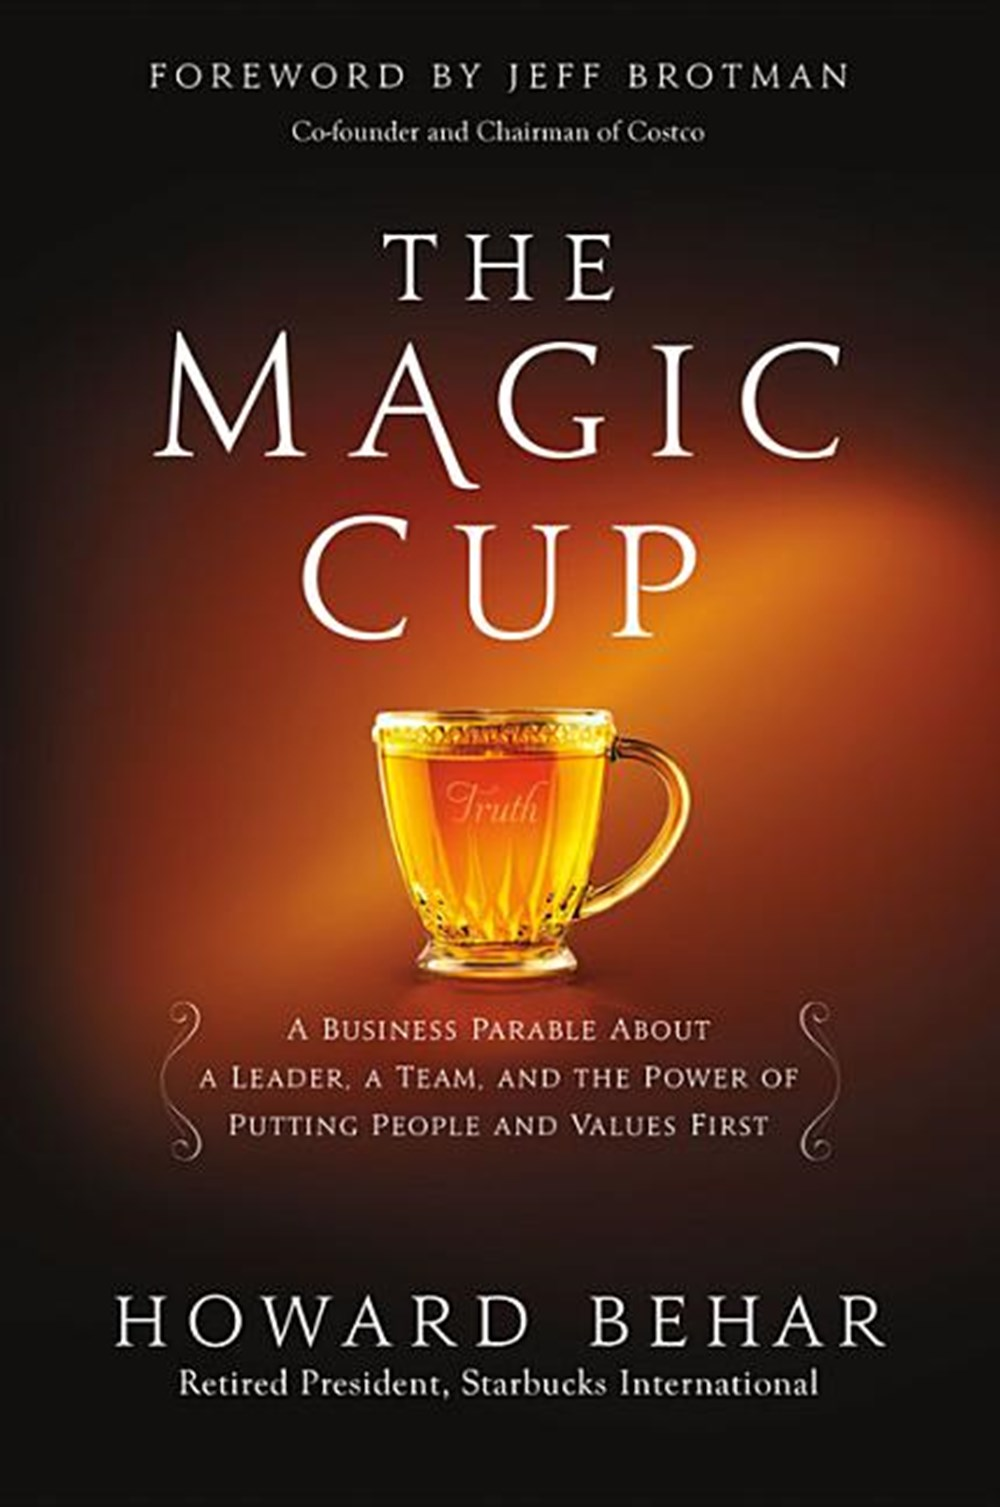 Magic Cup A Business Parable about a Leader, a Team, and the Power of Putting People and Values Firs